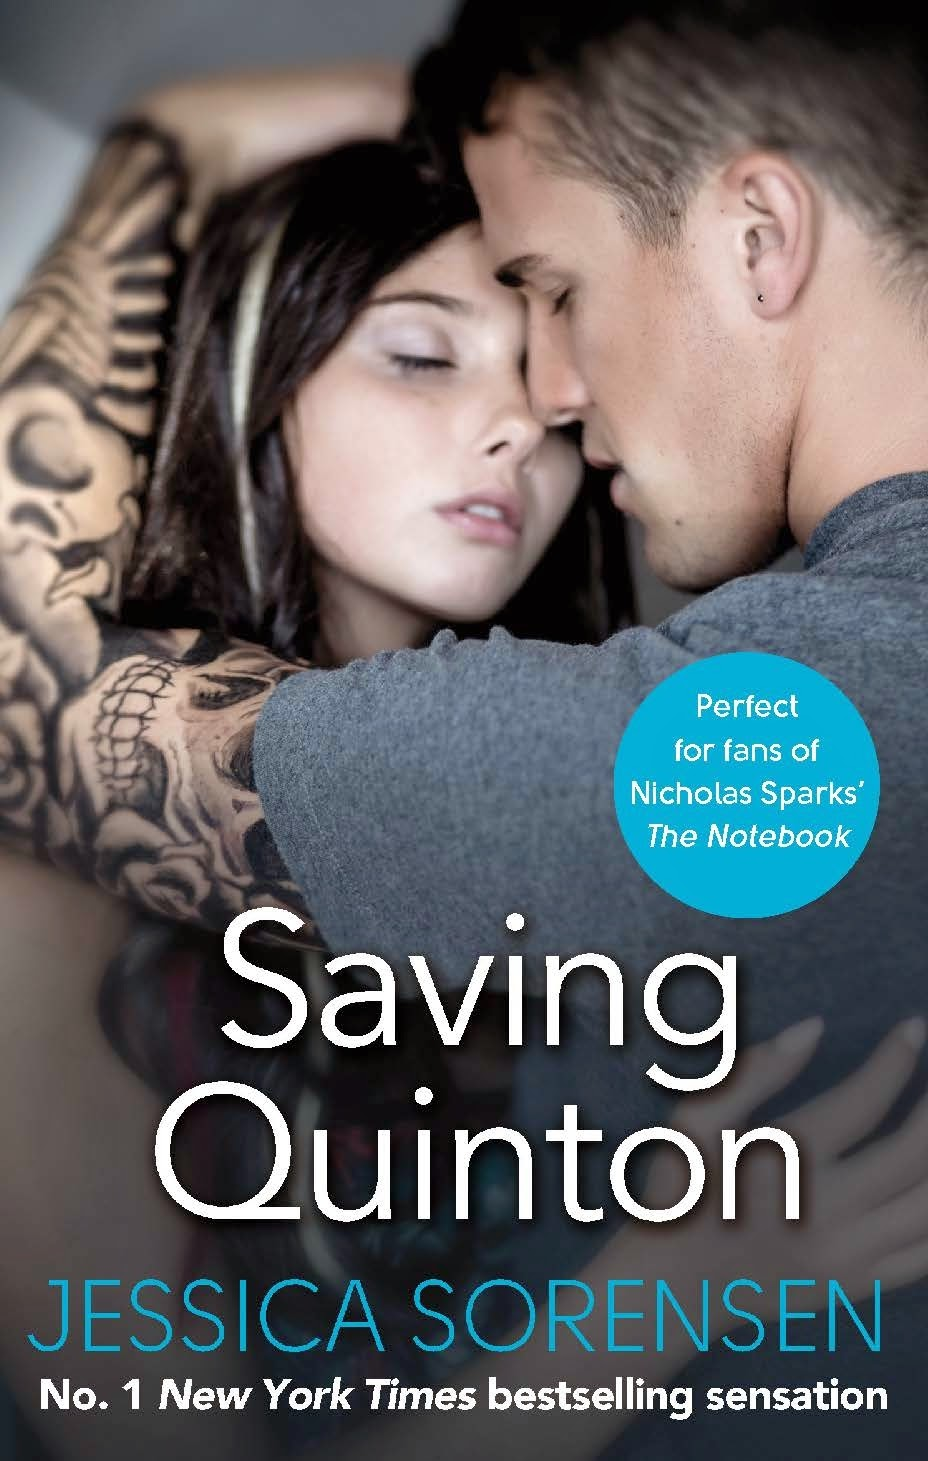 https://www.goodreads.com/book/show/18210225-saving-quinton